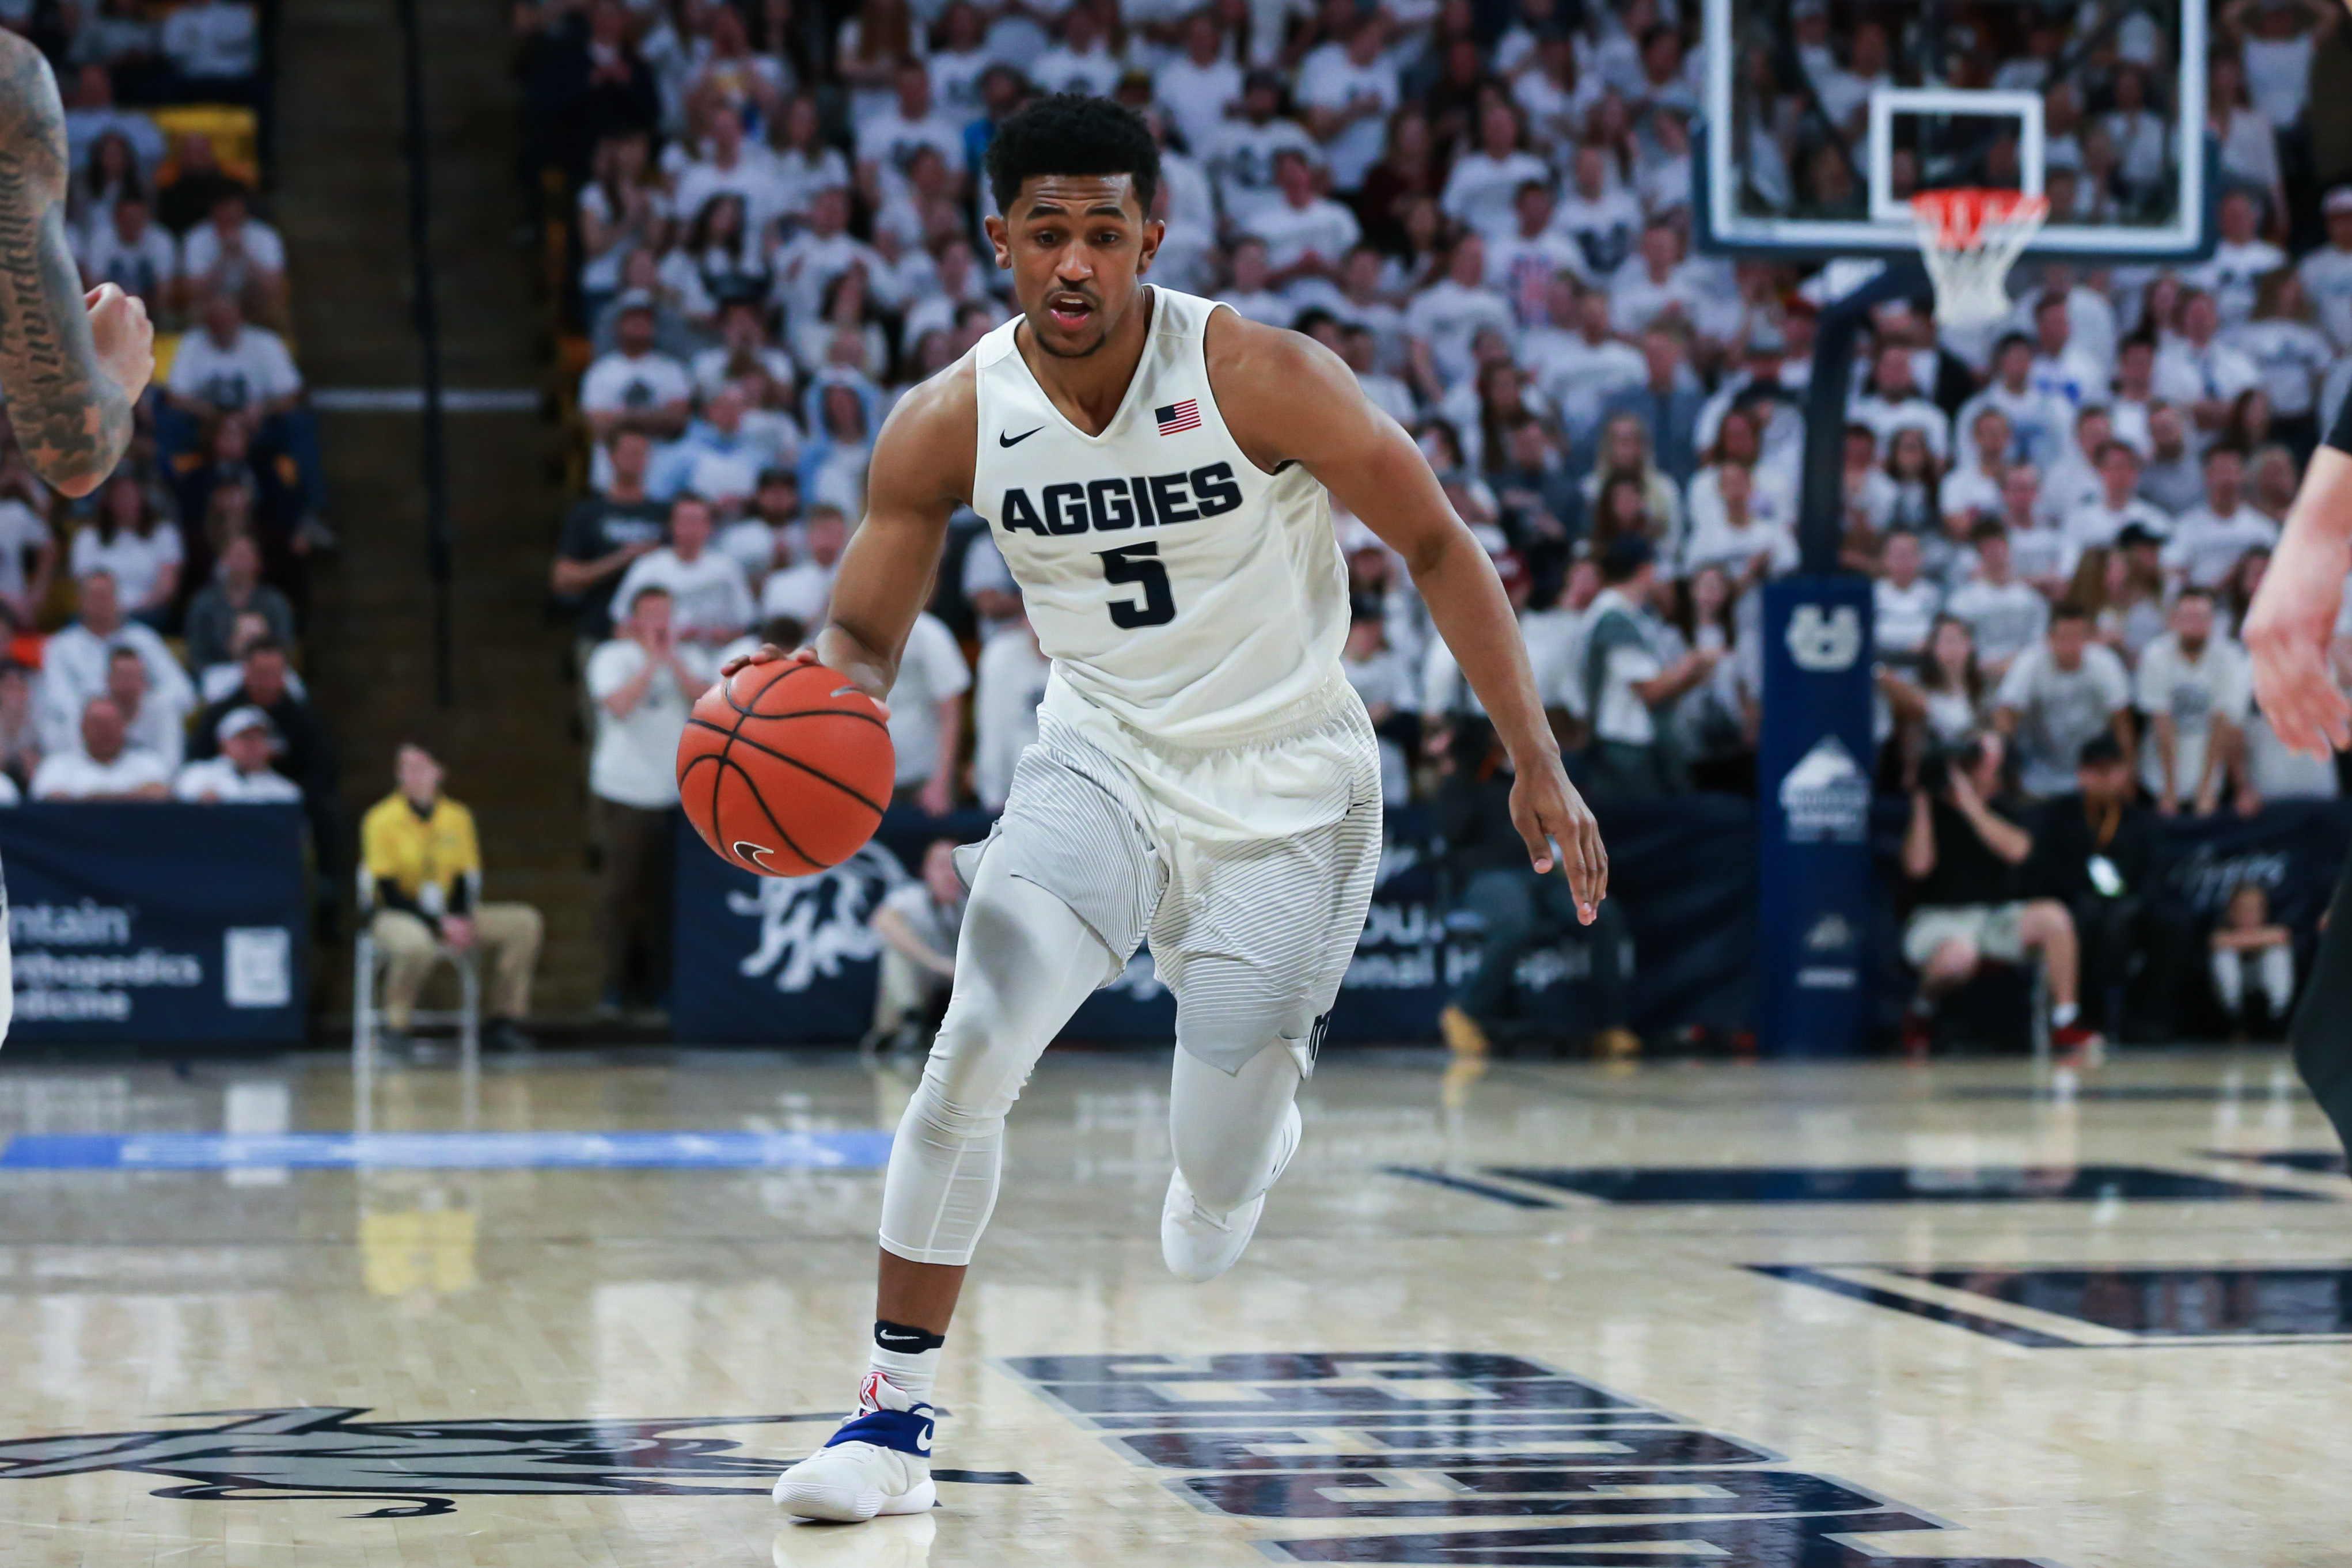 utah state basketball - mountain west connection